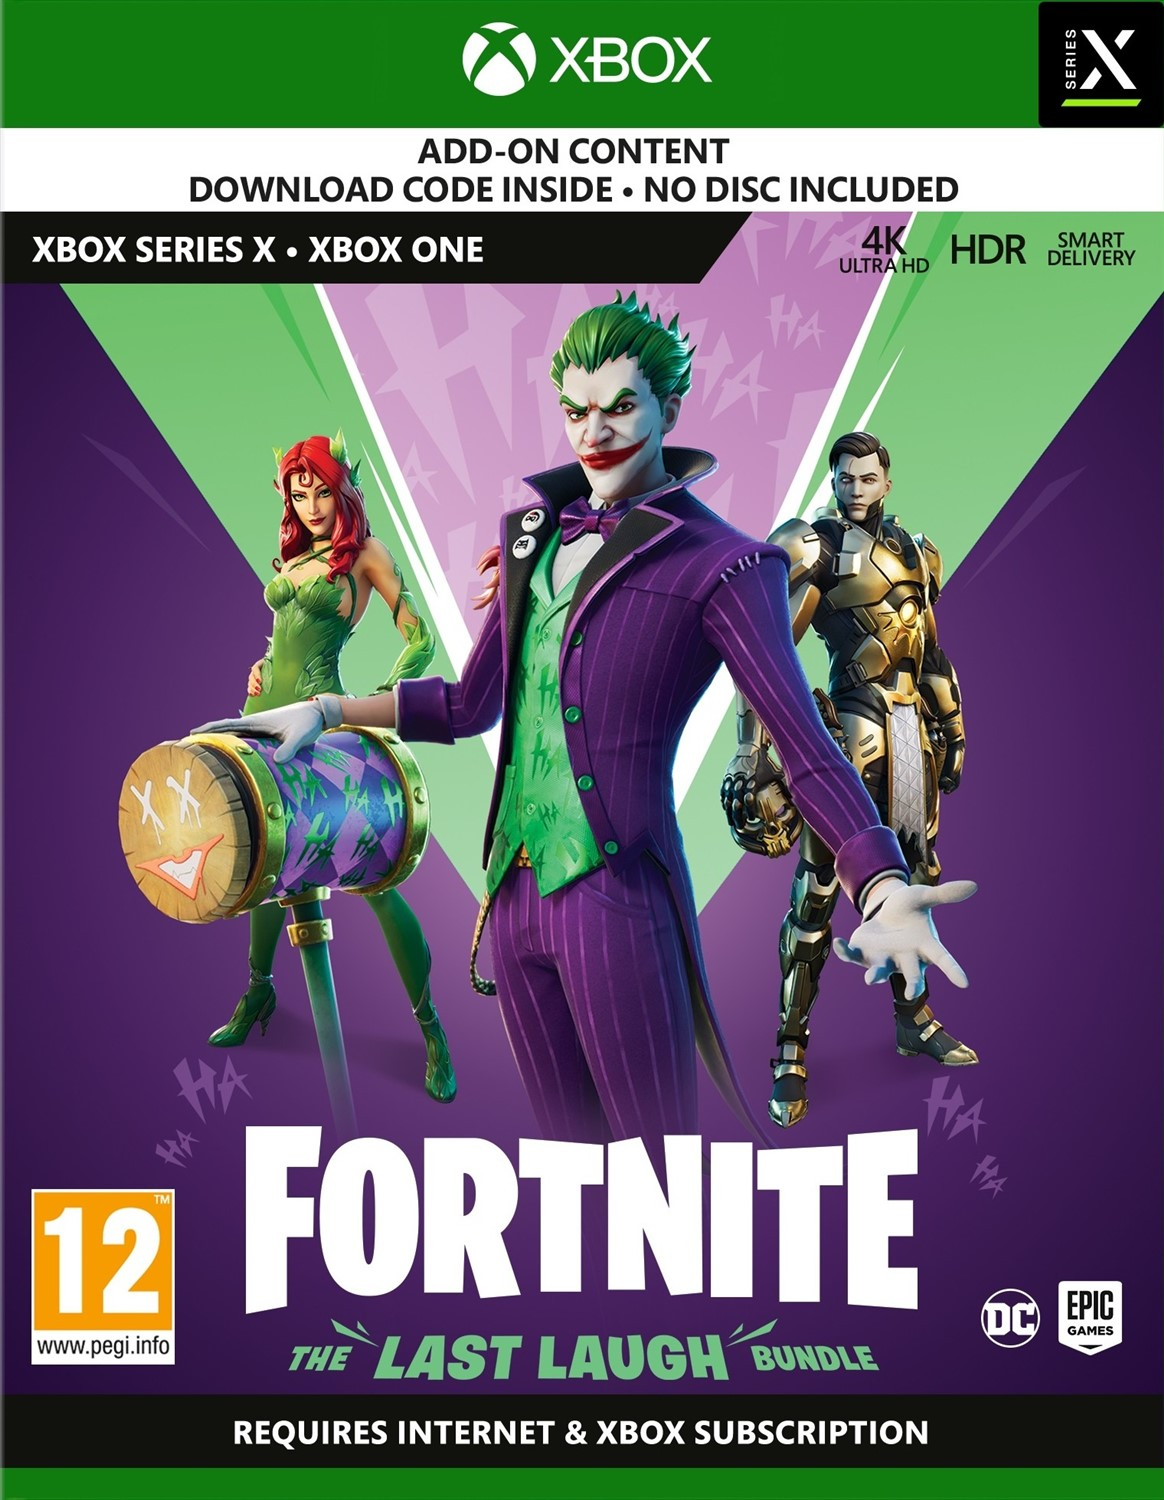 Fortnite: The Last Laugh Bundle - Xbox One/Series X